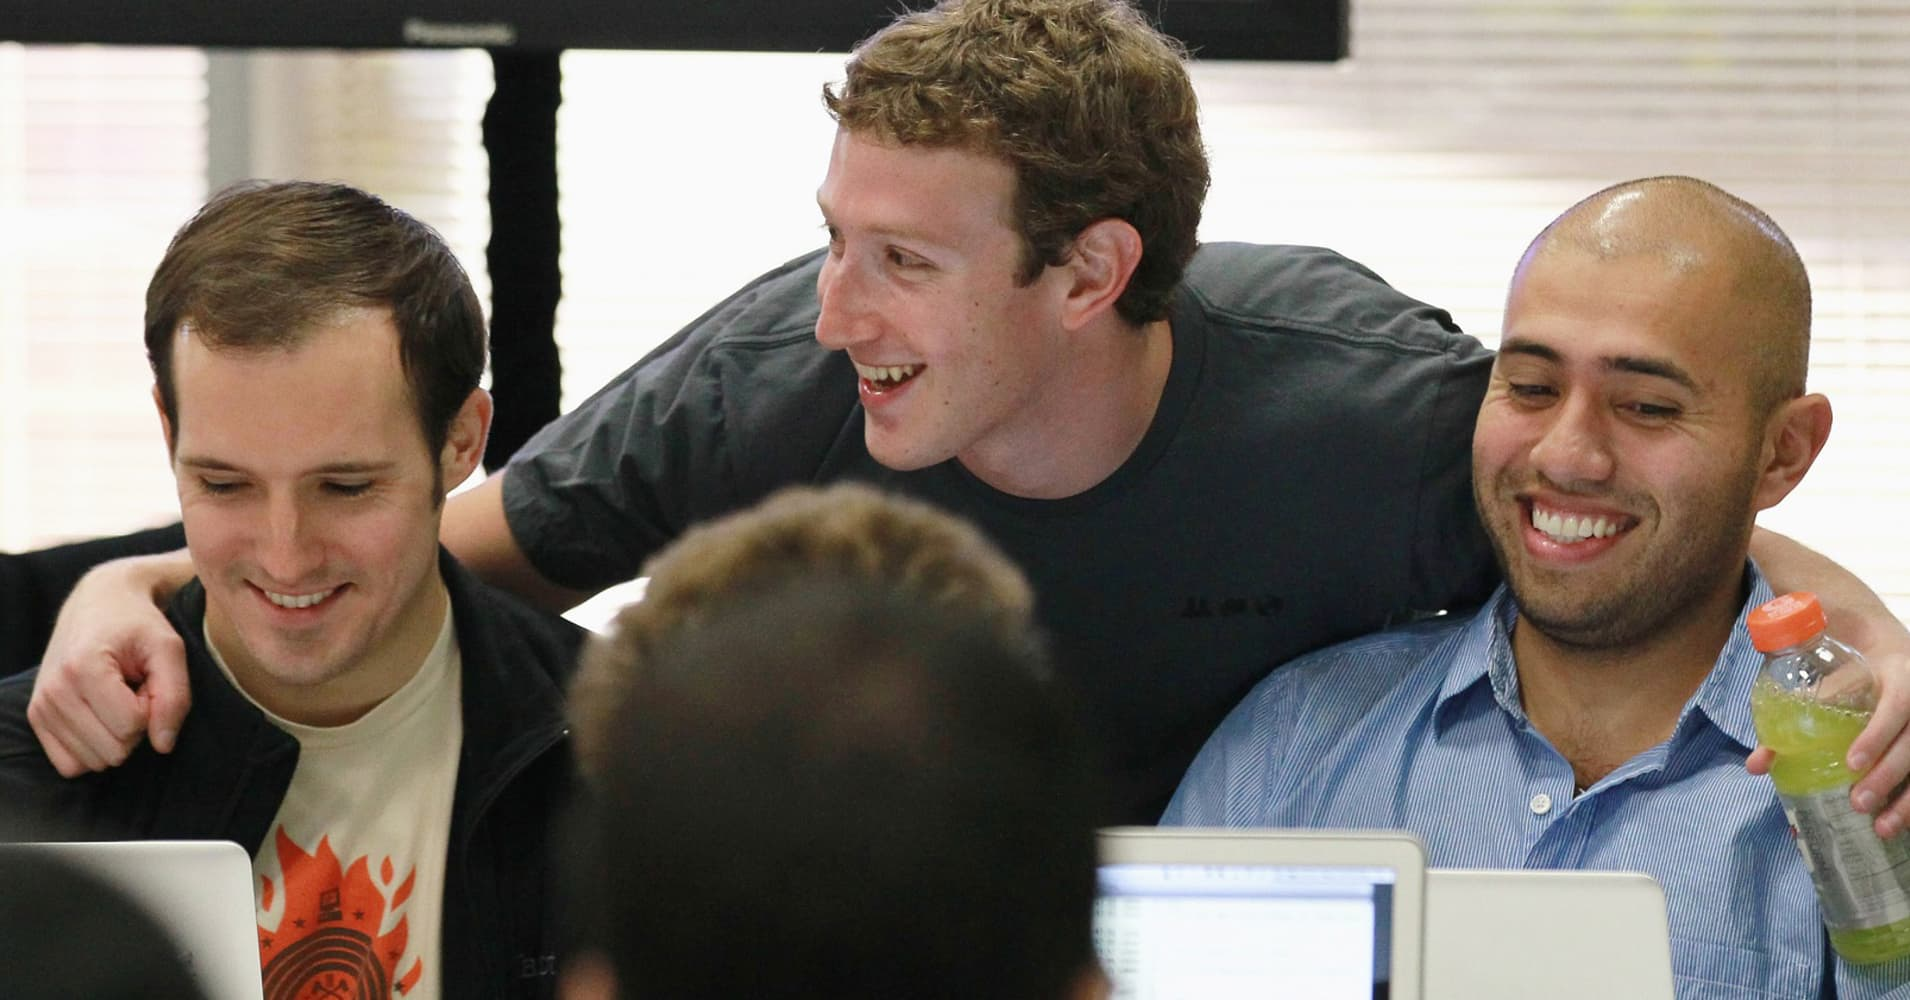 Facebook founder and CEO Mark Zuckerberg with Facebook employees.